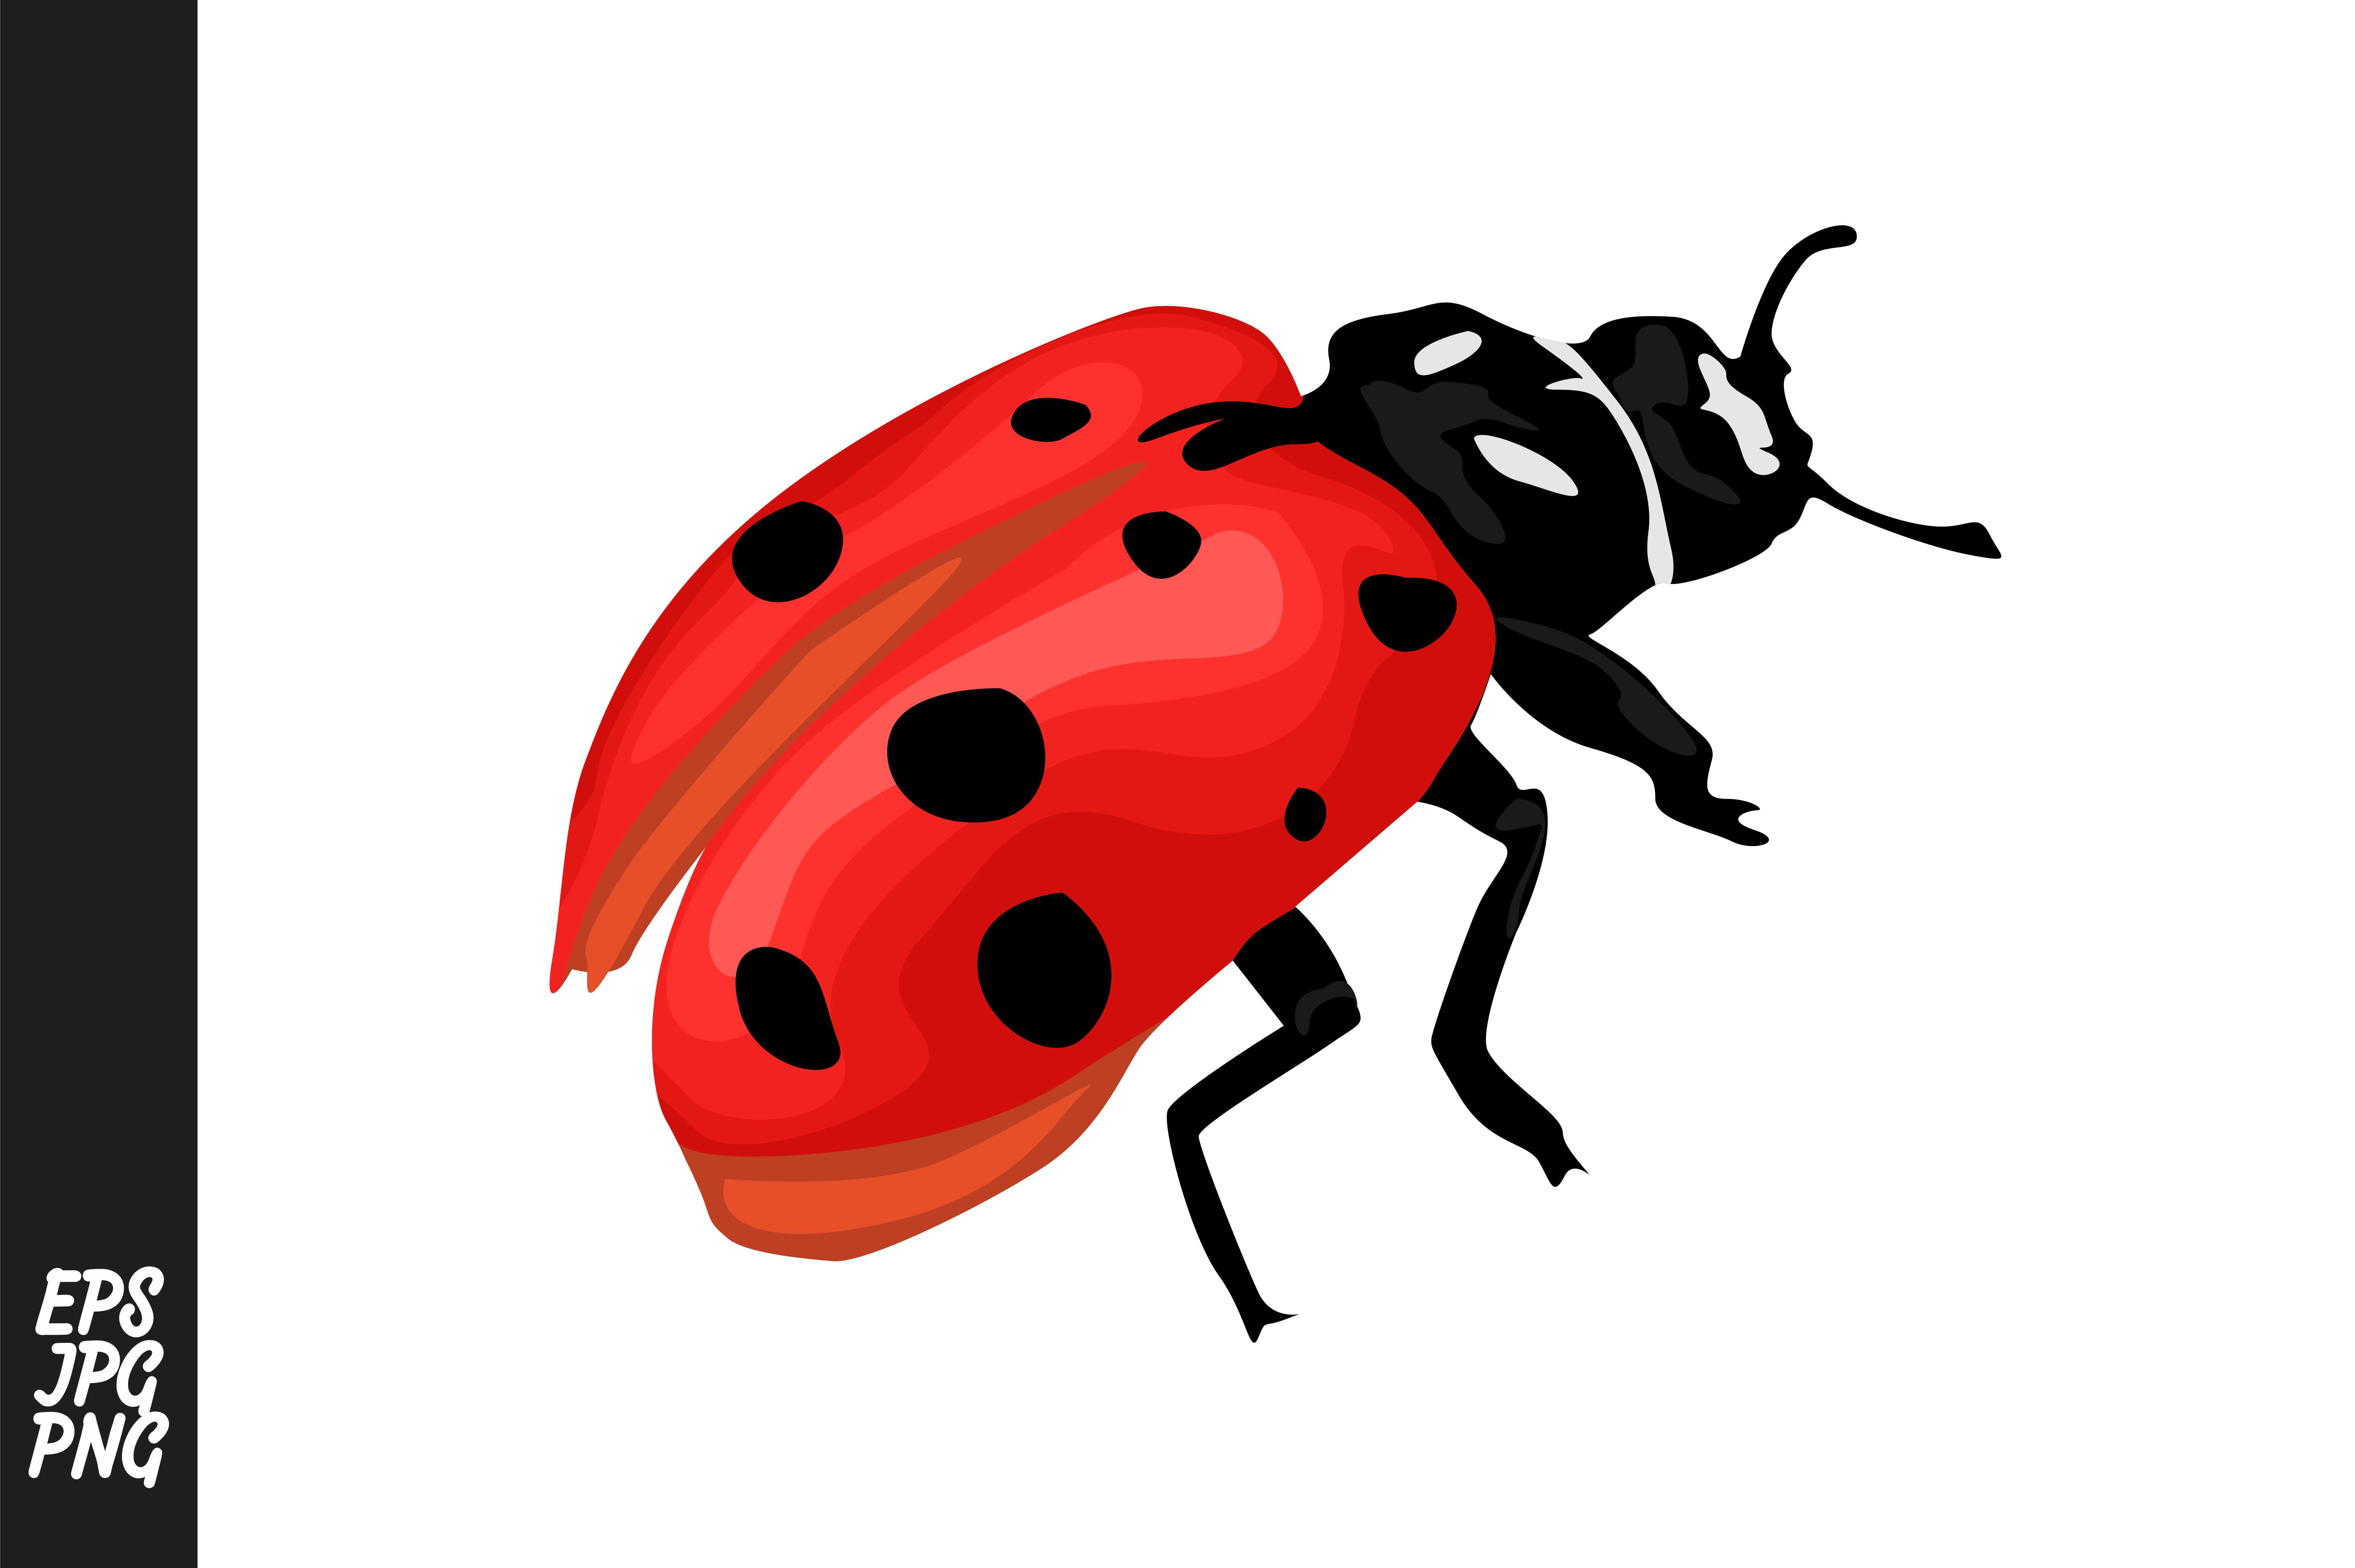 Download Free Ladybug Vector Clipart Graphic By Arief Sapta Adjie Creative for Cricut Explore, Silhouette and other cutting machines.